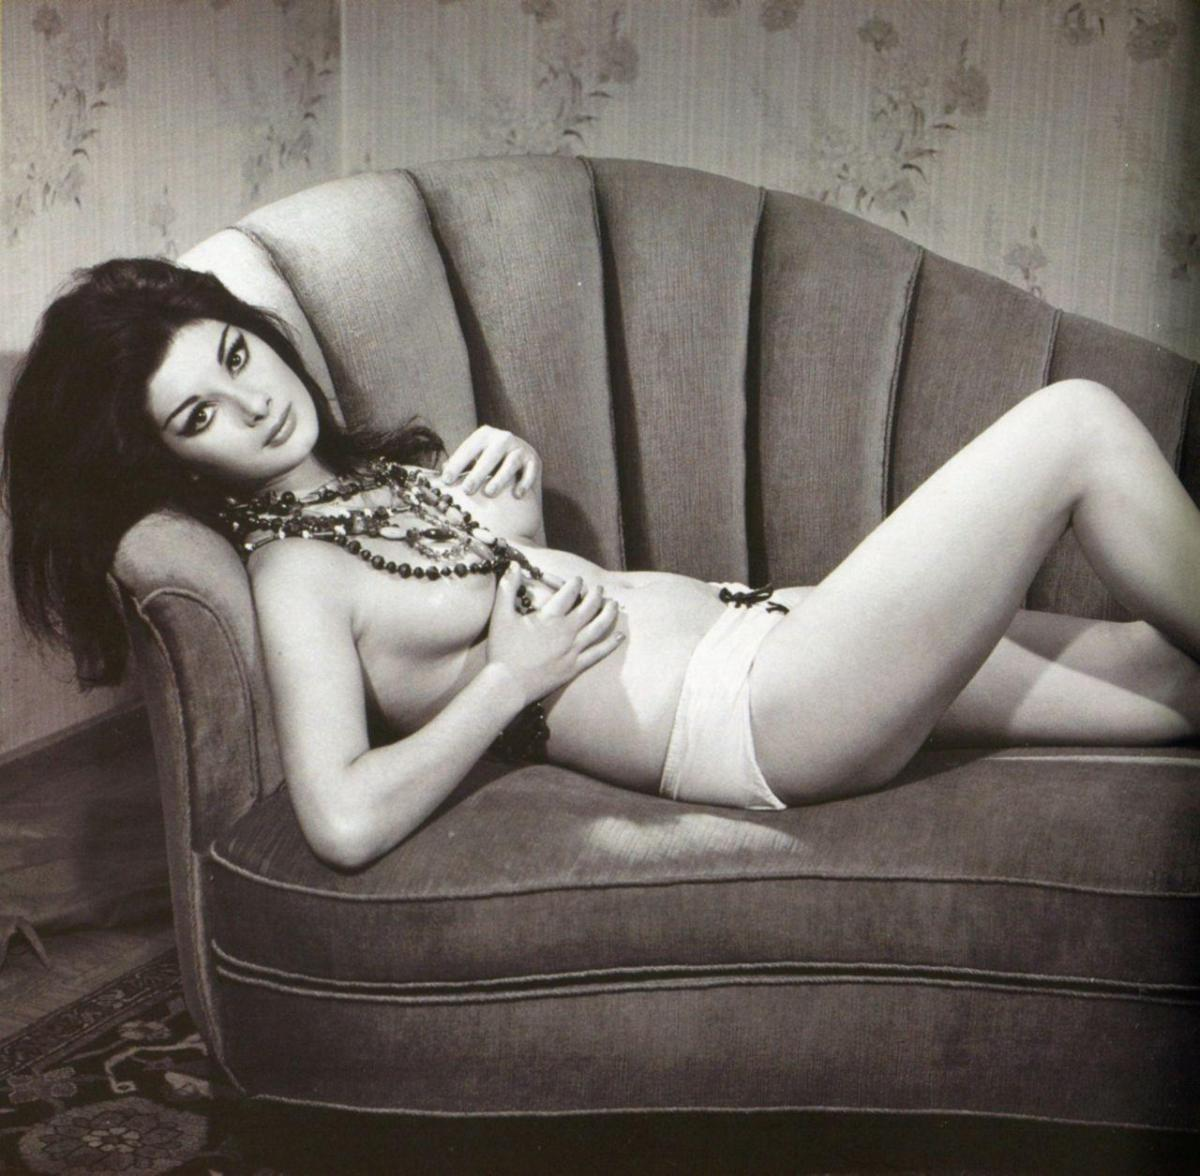 http://24femmespersecond.files.wordpress.com/2013/08/1948-edwige-fenech-beads.jpg?w=1200